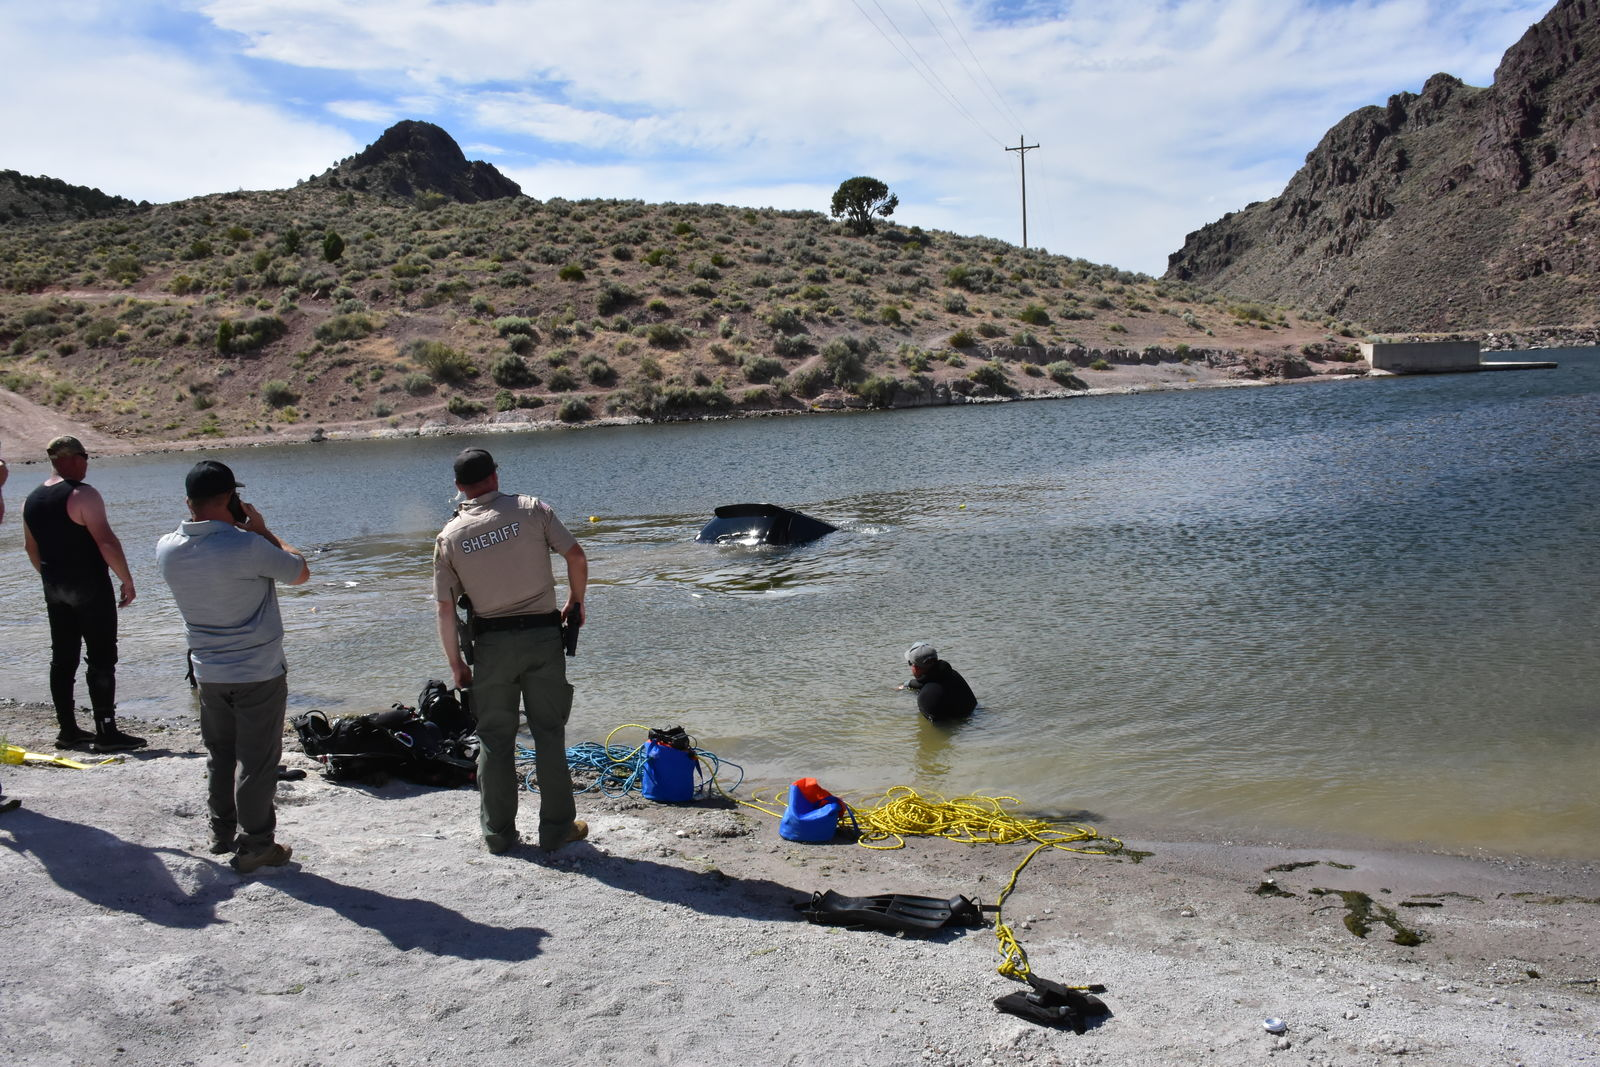 A man's body was pulled from Newcastle Reservoir on Saturday morning and the Iron County Sheriff's Office believes alcohol was a factor in the death. (Photo: Iron County Sheriff's Office)